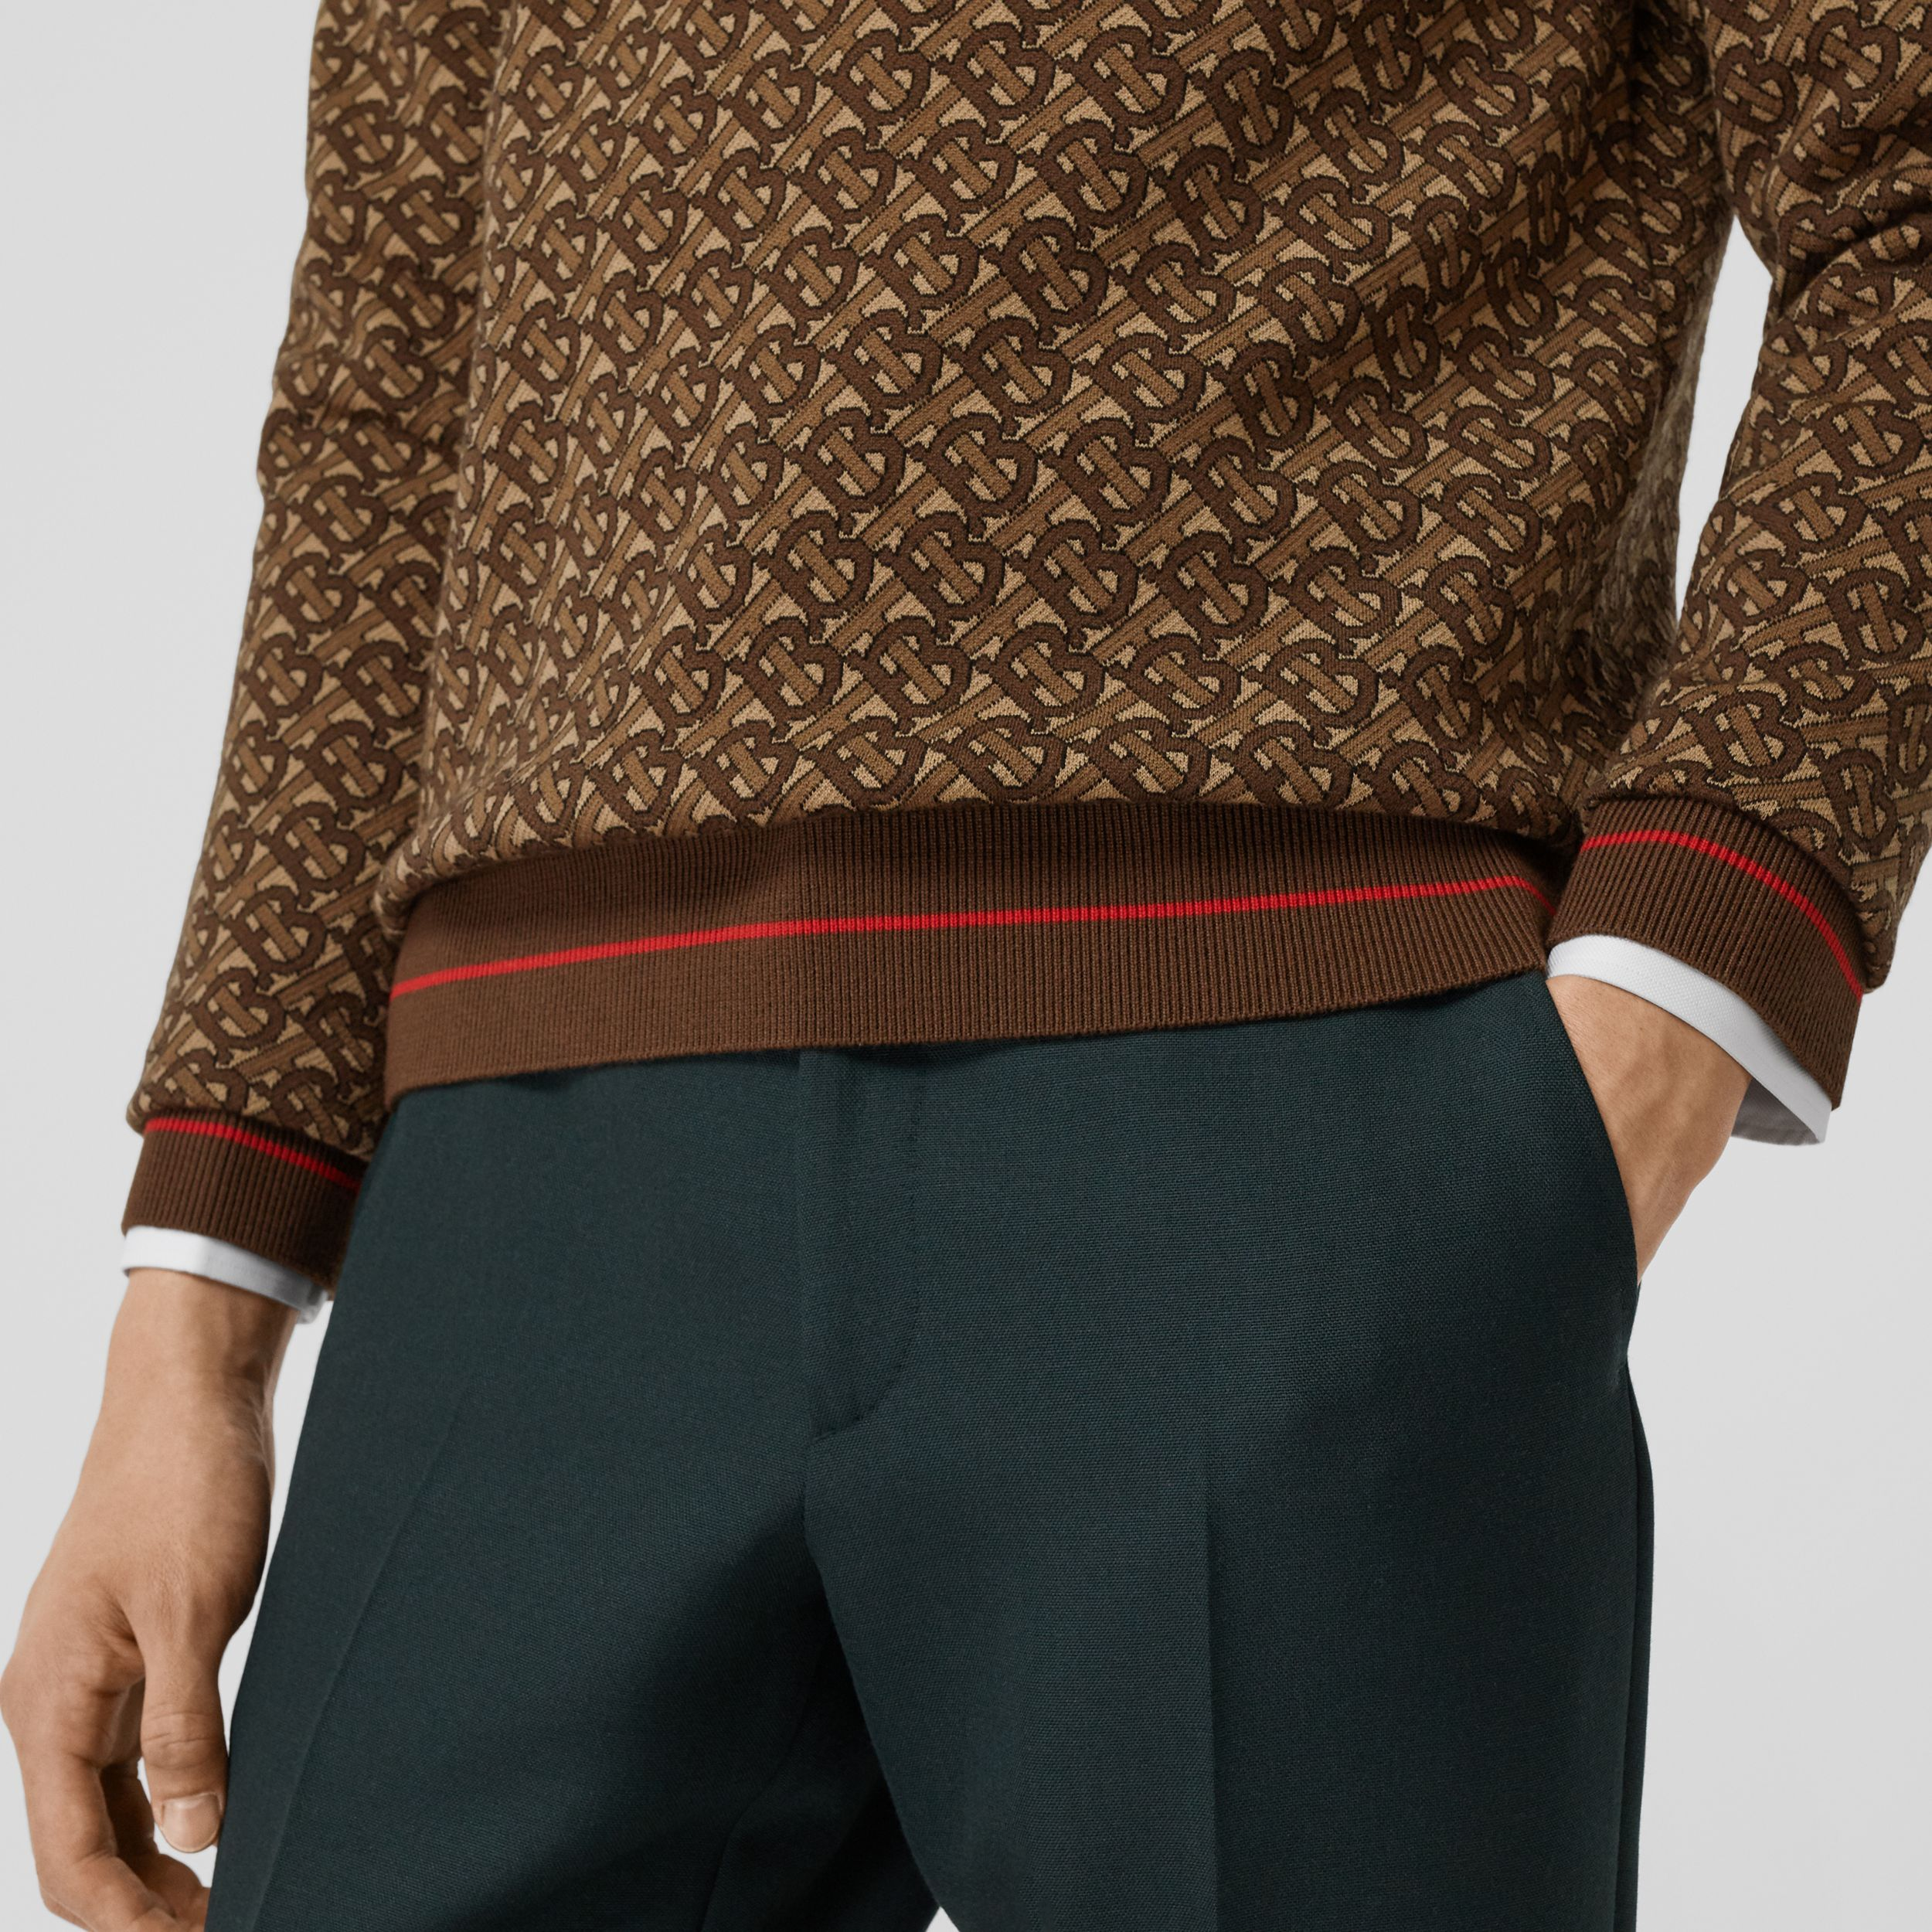 Monogram Merino Wool Jacquard Sweater in Bridle Brown - Men | Burberry - 2